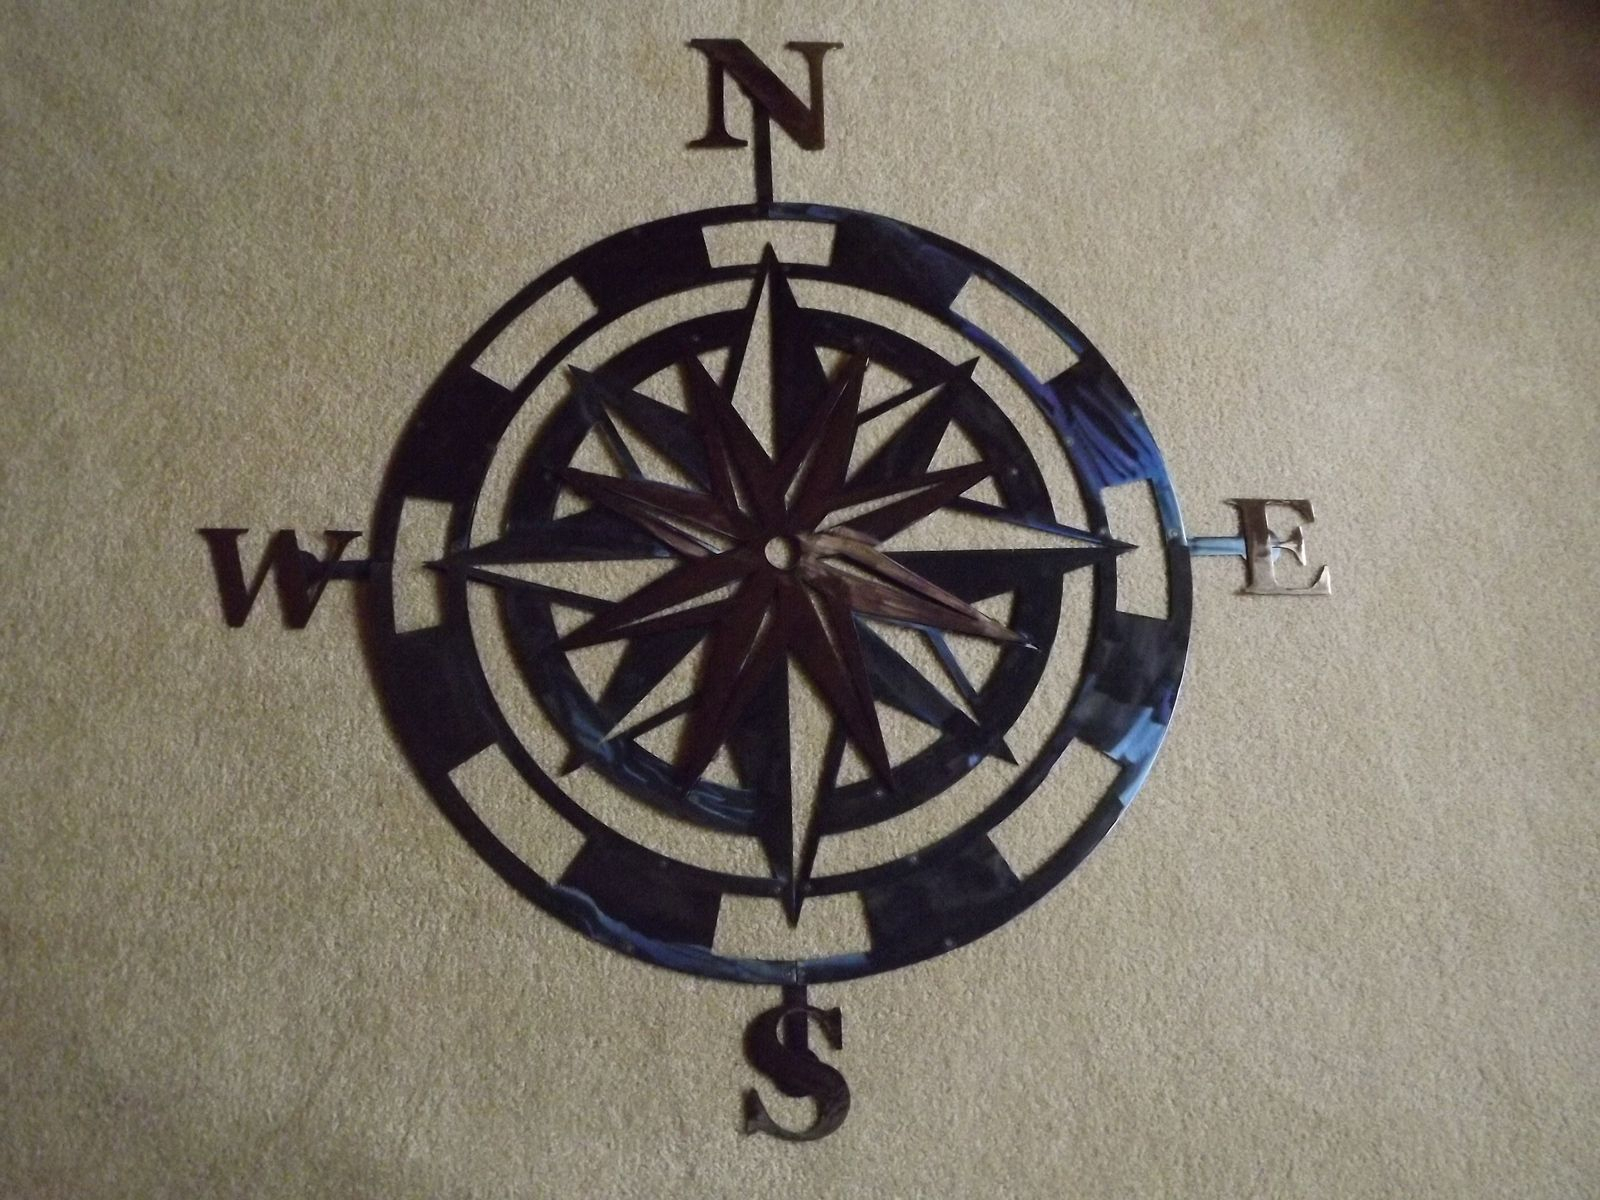 Handmade 36 Inch Metal Compass Rose Wall Artsuperior Iron Artz With Well Liked Round Compass Wall Decor (View 13 of 20)